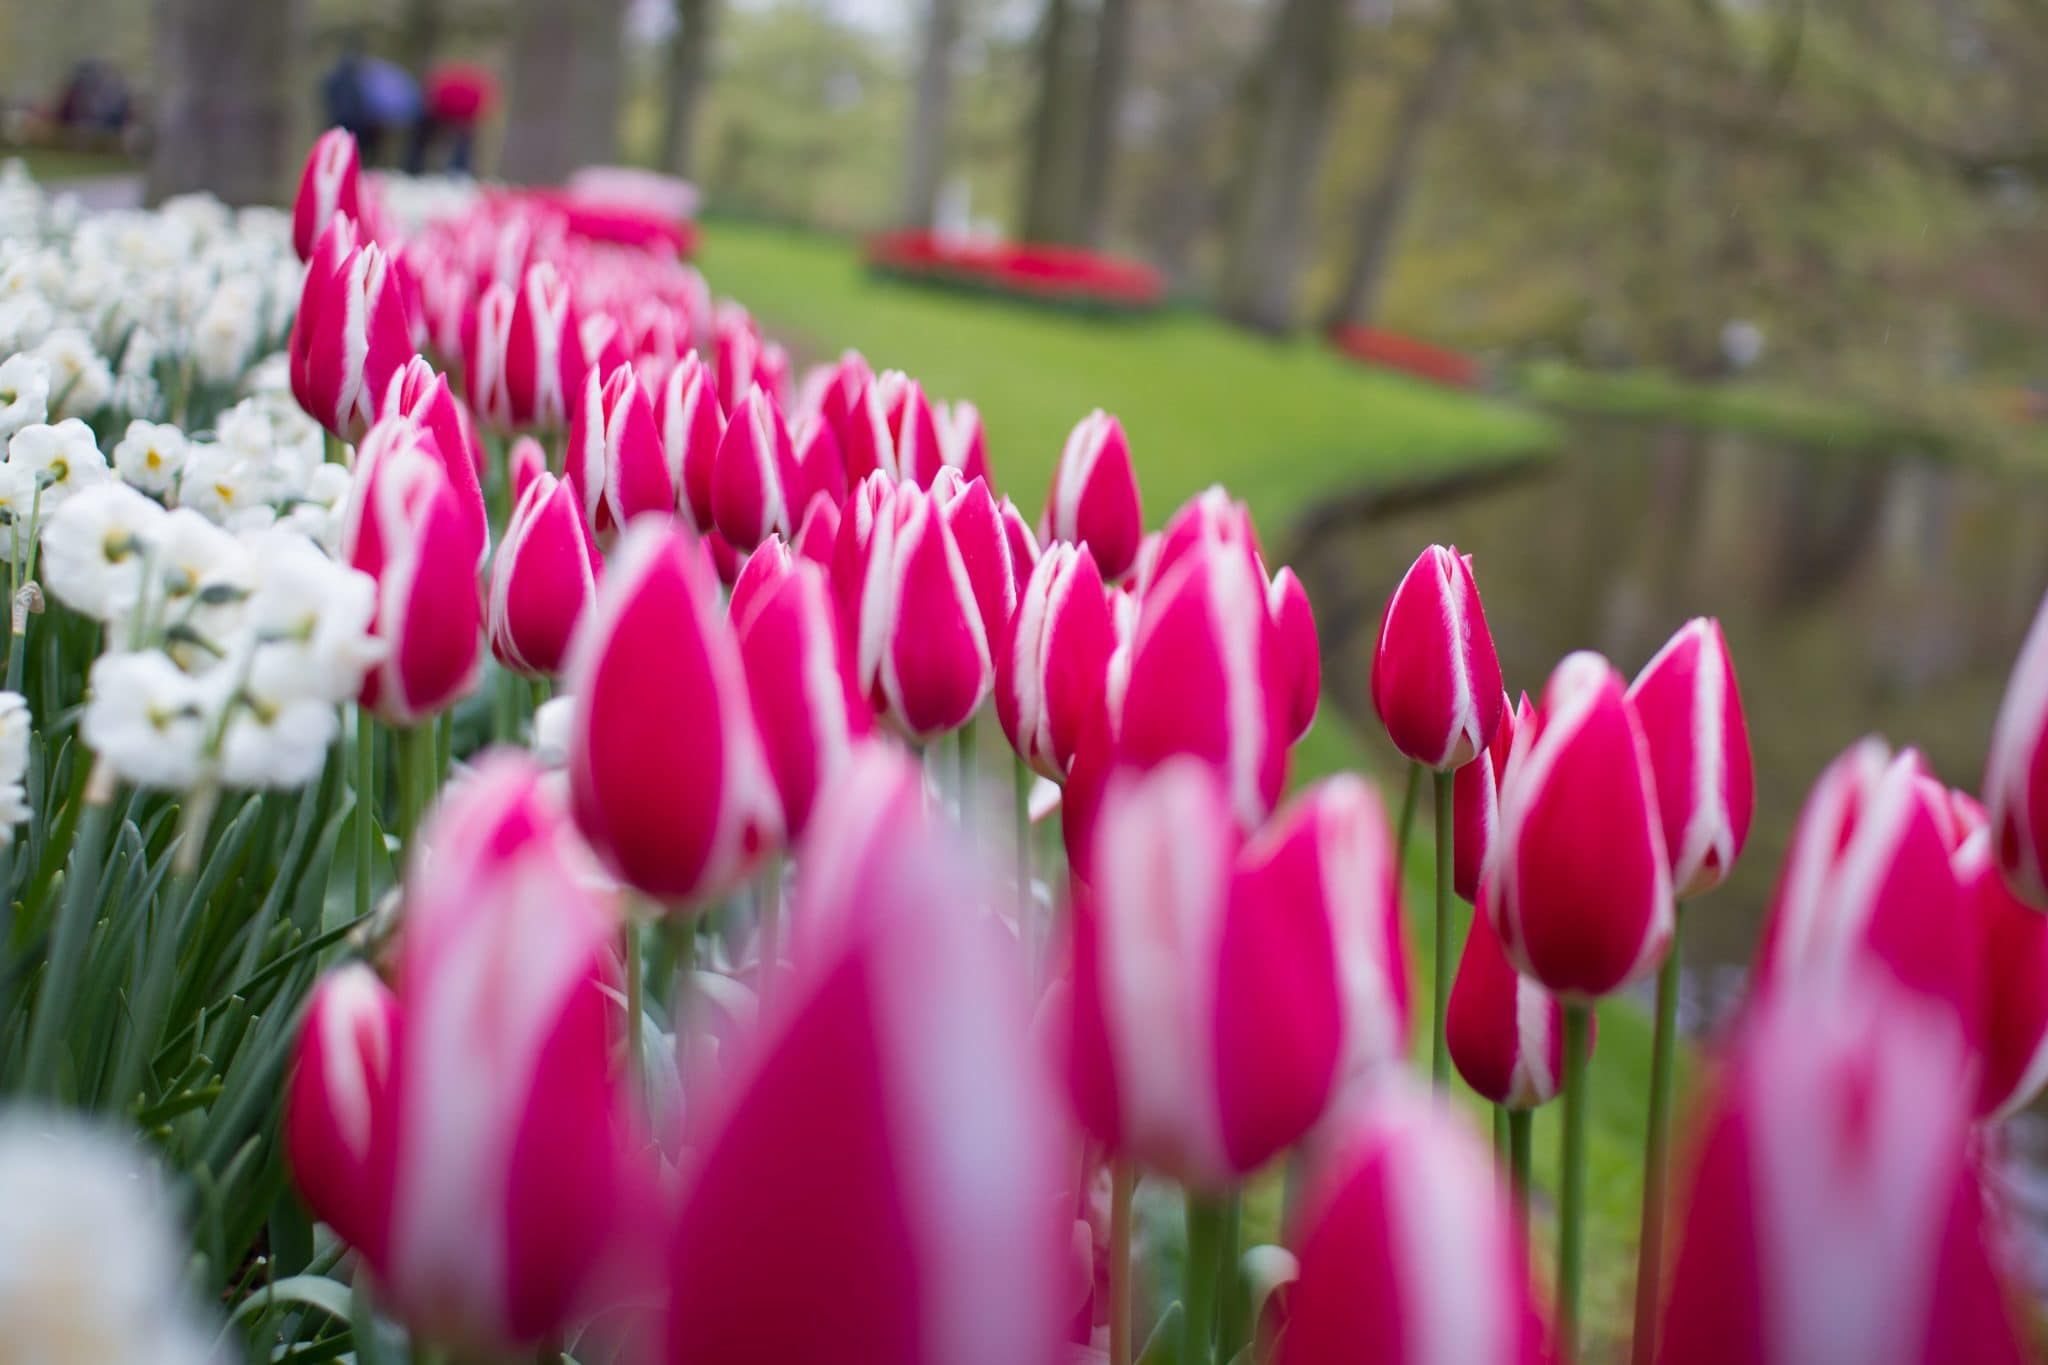 Flowers of Keukenhof (2016)